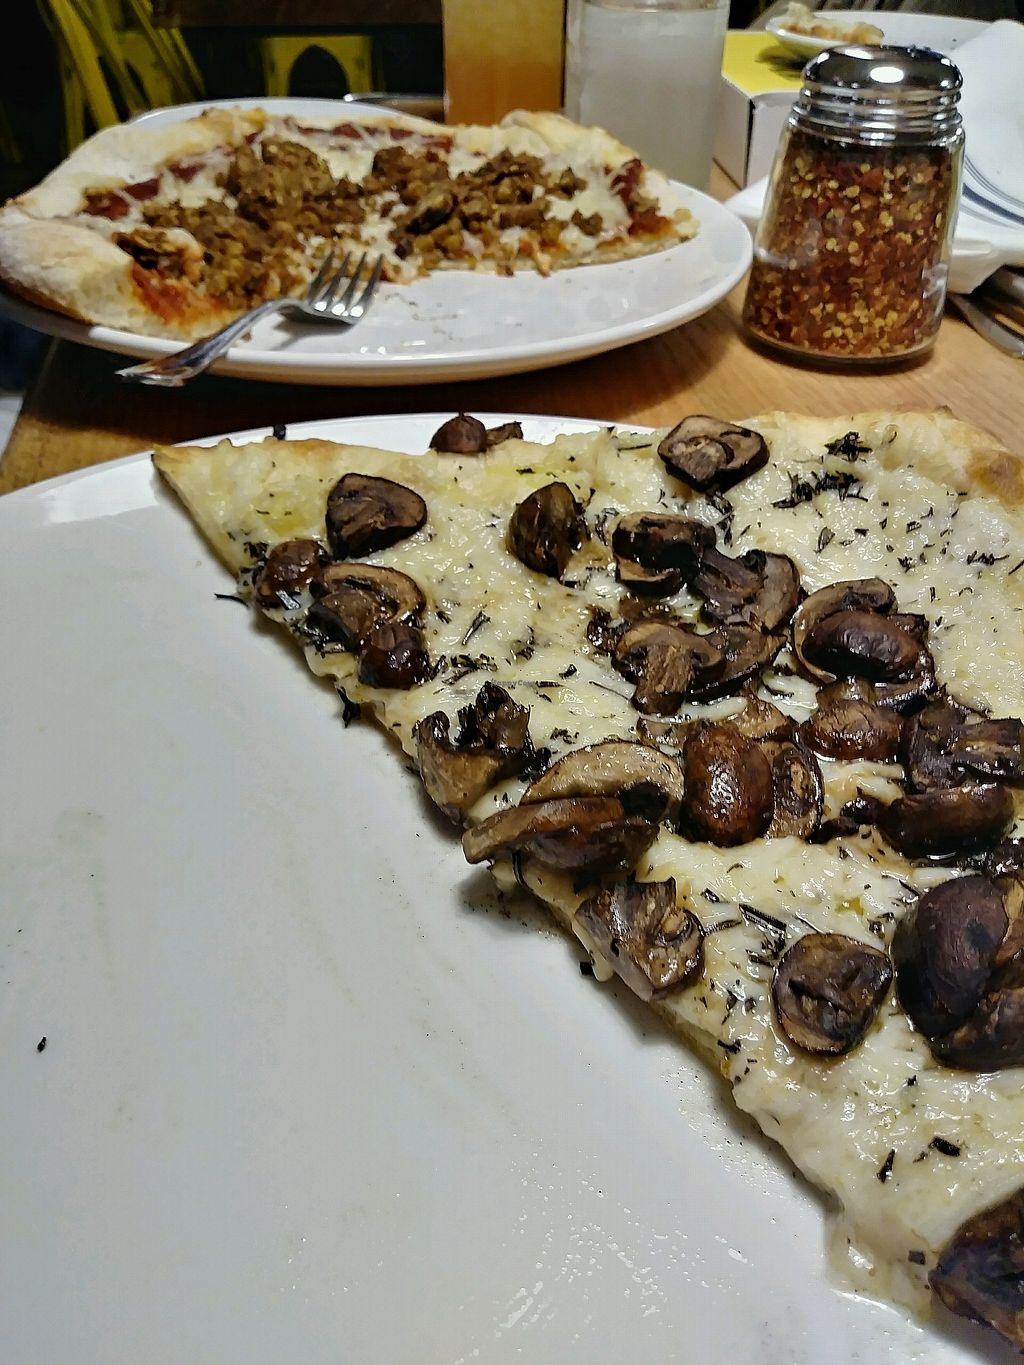 """Photo of Hugo's Pizza  by <a href=""""/members/profile/NynaA"""">NynaA</a> <br/>Vegan pizza! <br/> April 8, 2018  - <a href='/contact/abuse/image/116172/382500'>Report</a>"""